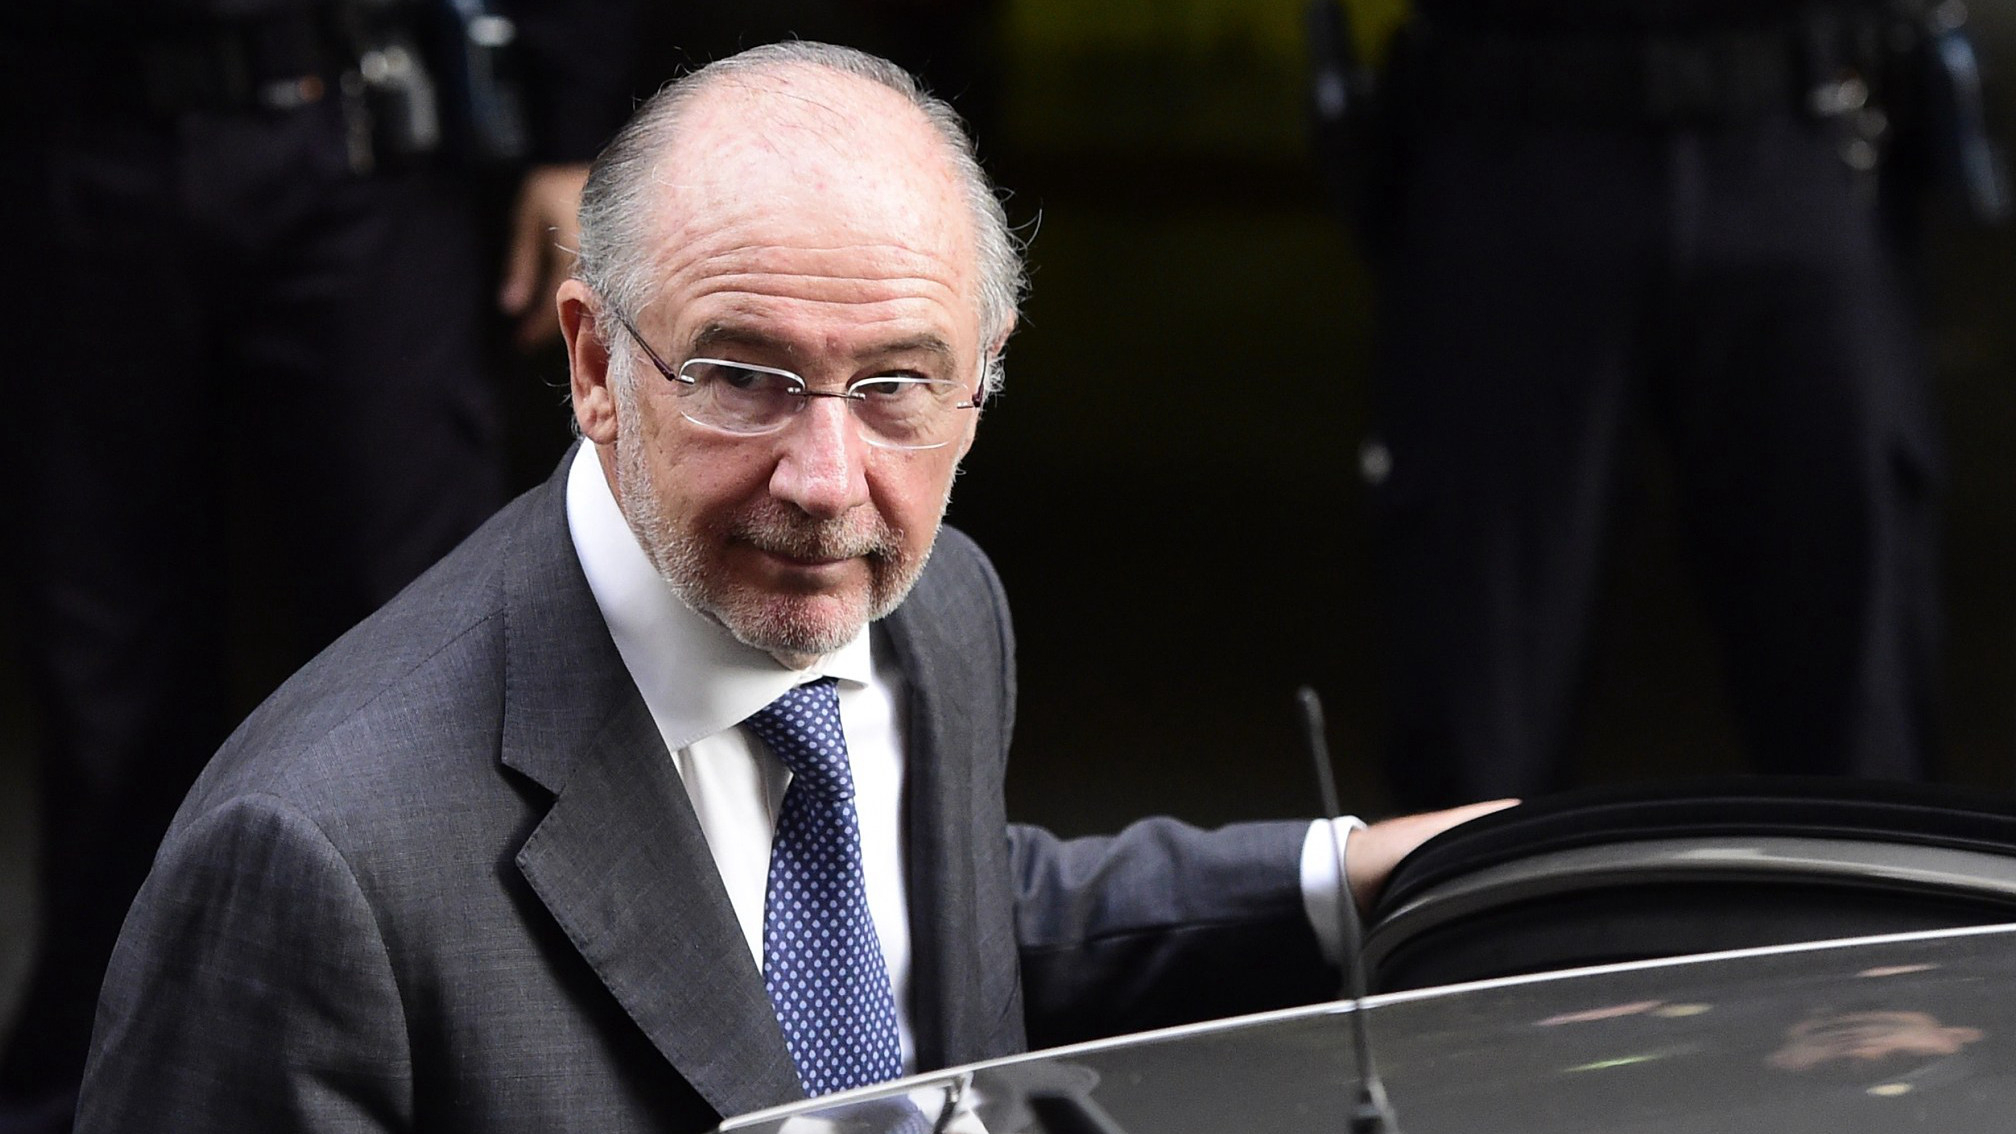 Spain court confirms 4.5-year jail term for ex-IMF chief Rato